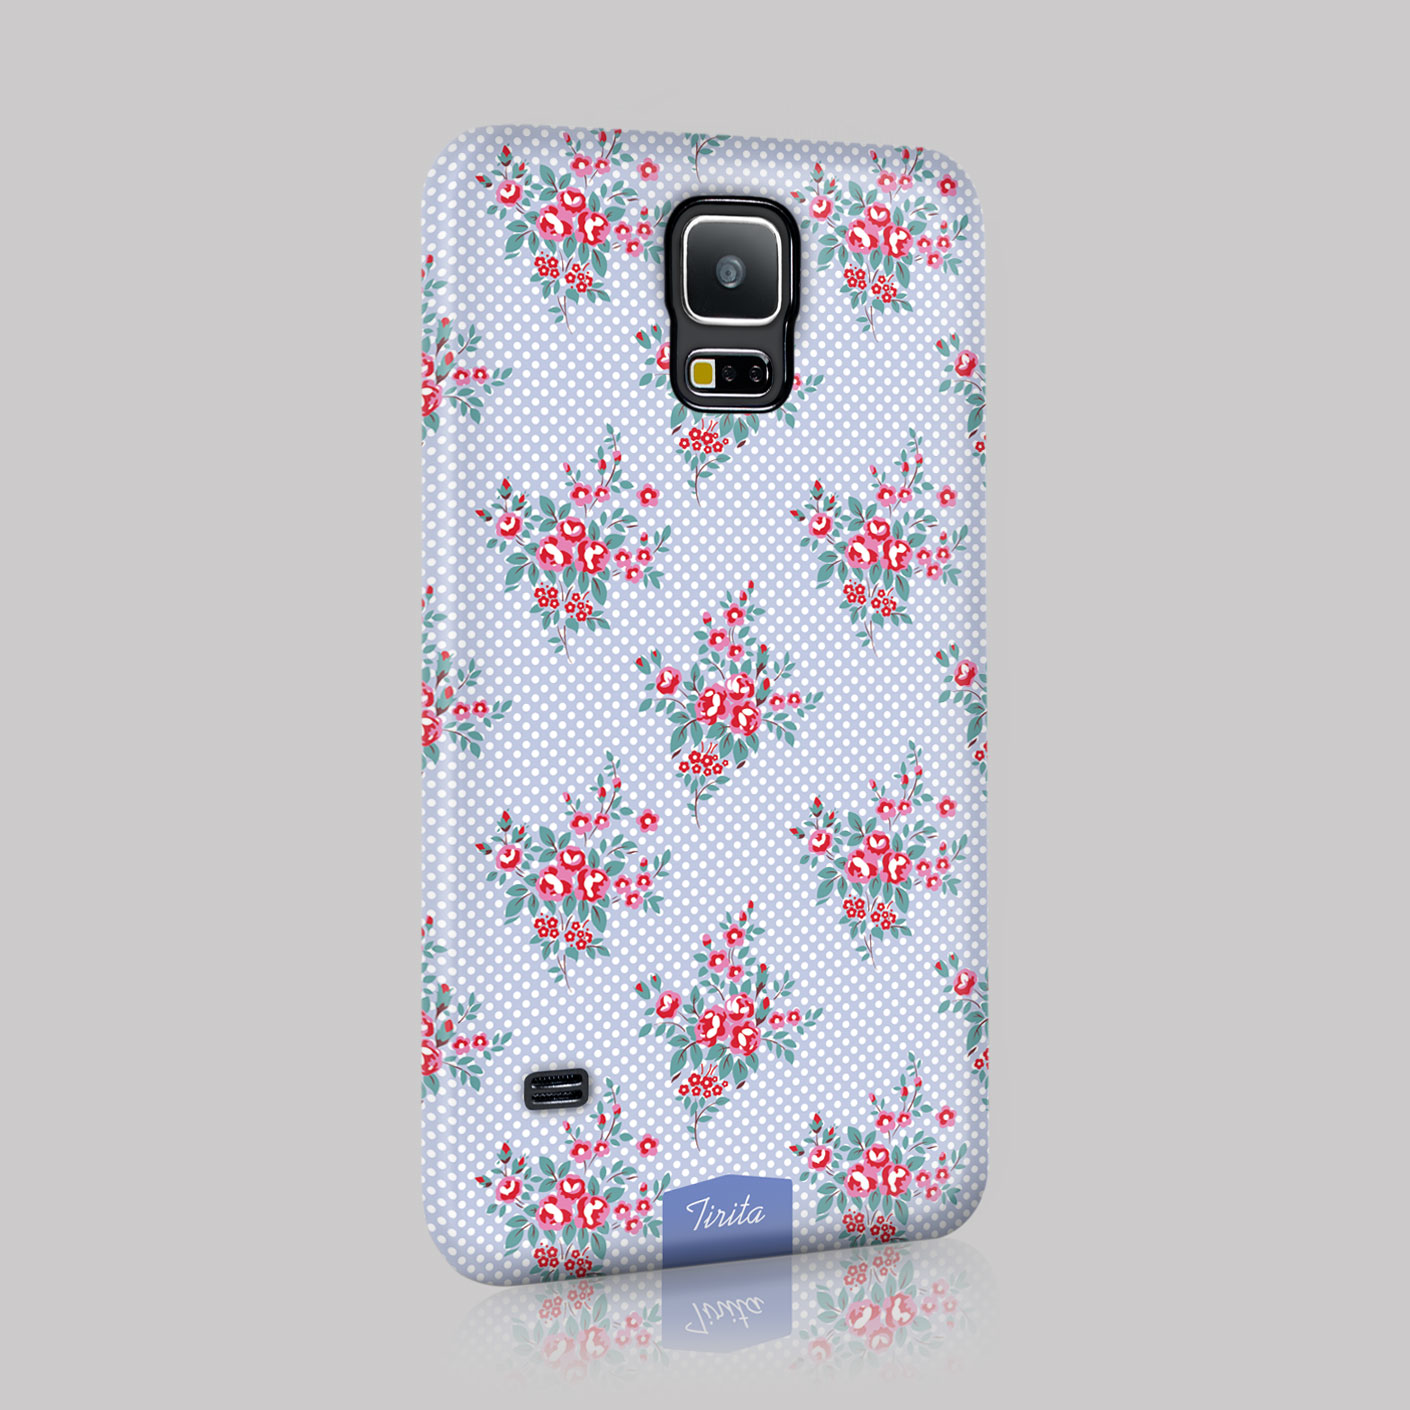 Tirita shabby chic vintage cute floral case hard cover for for Case shabby chic country